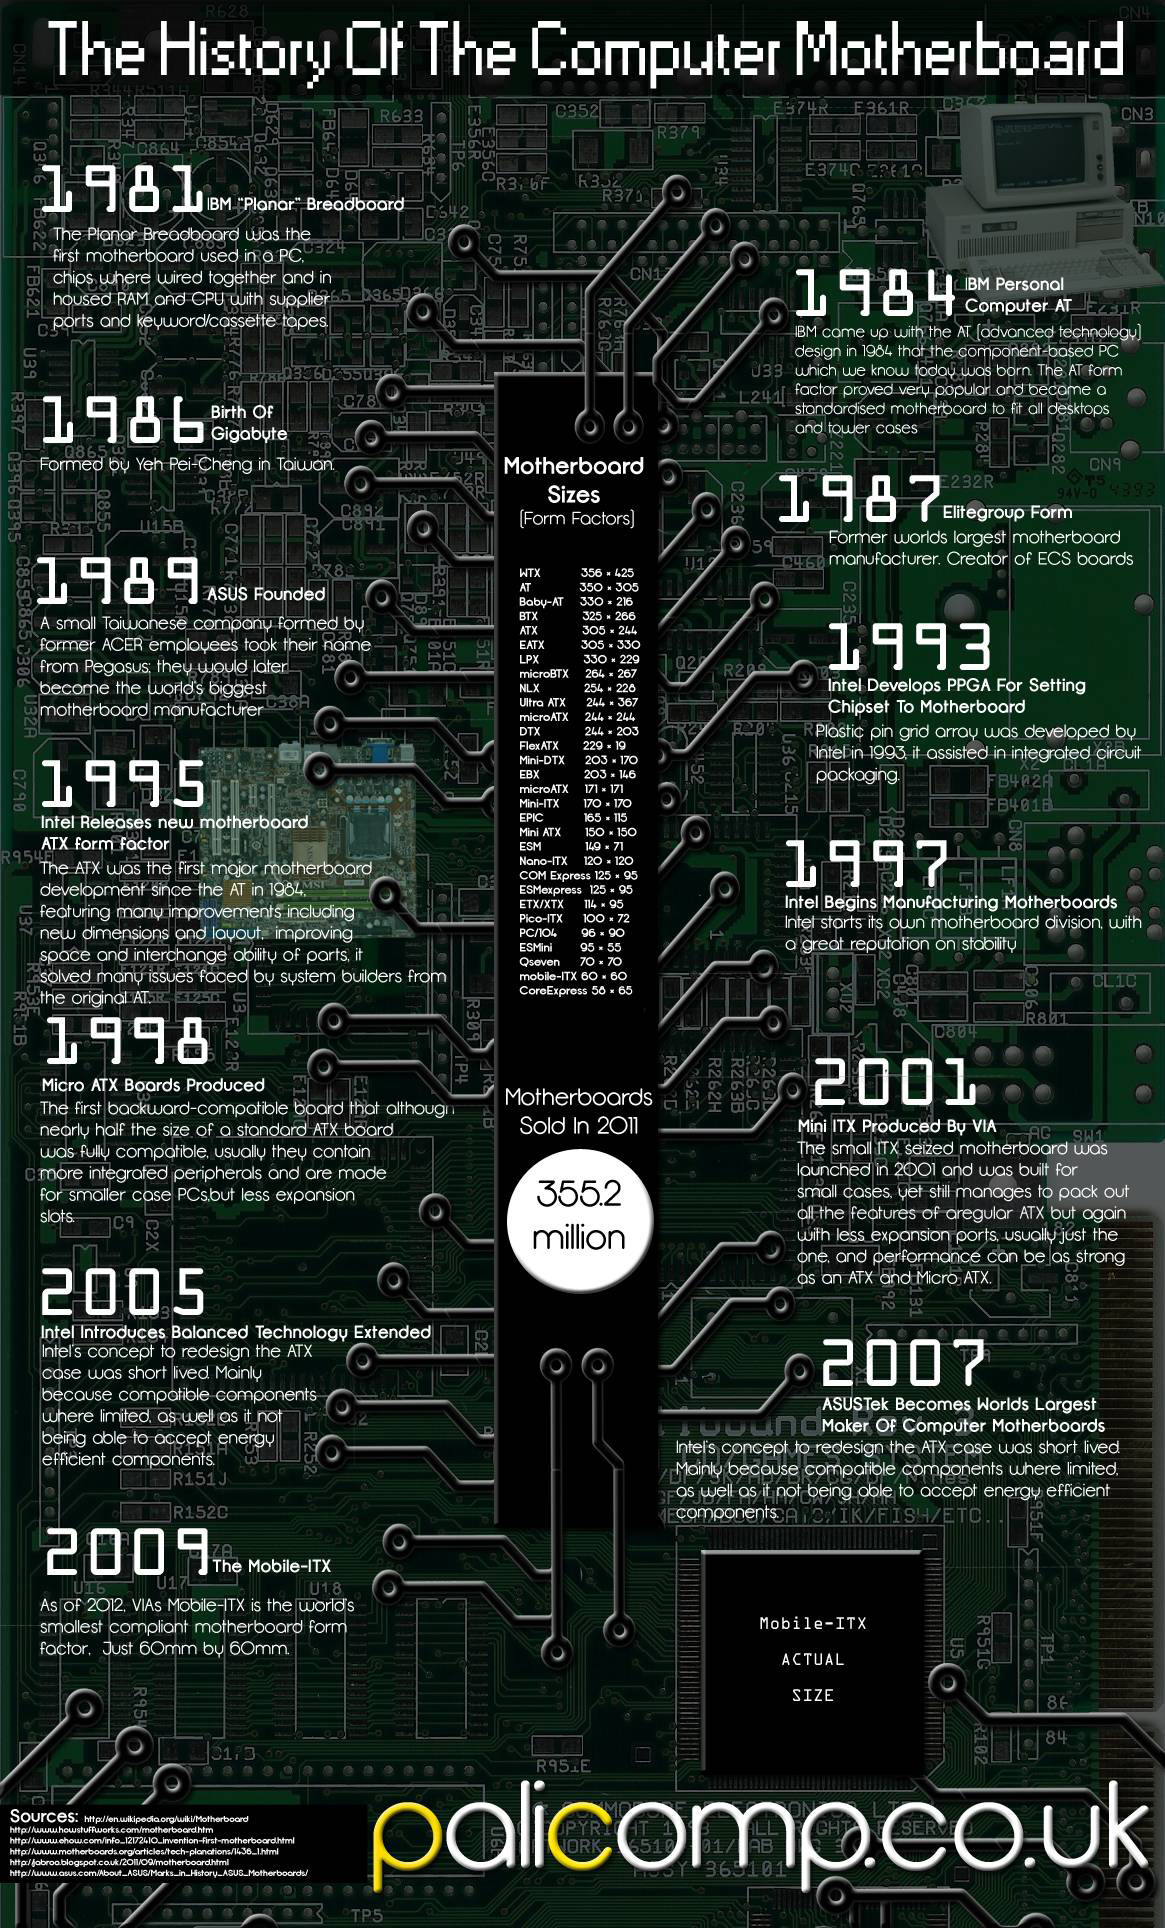 The History Of The Motherboard